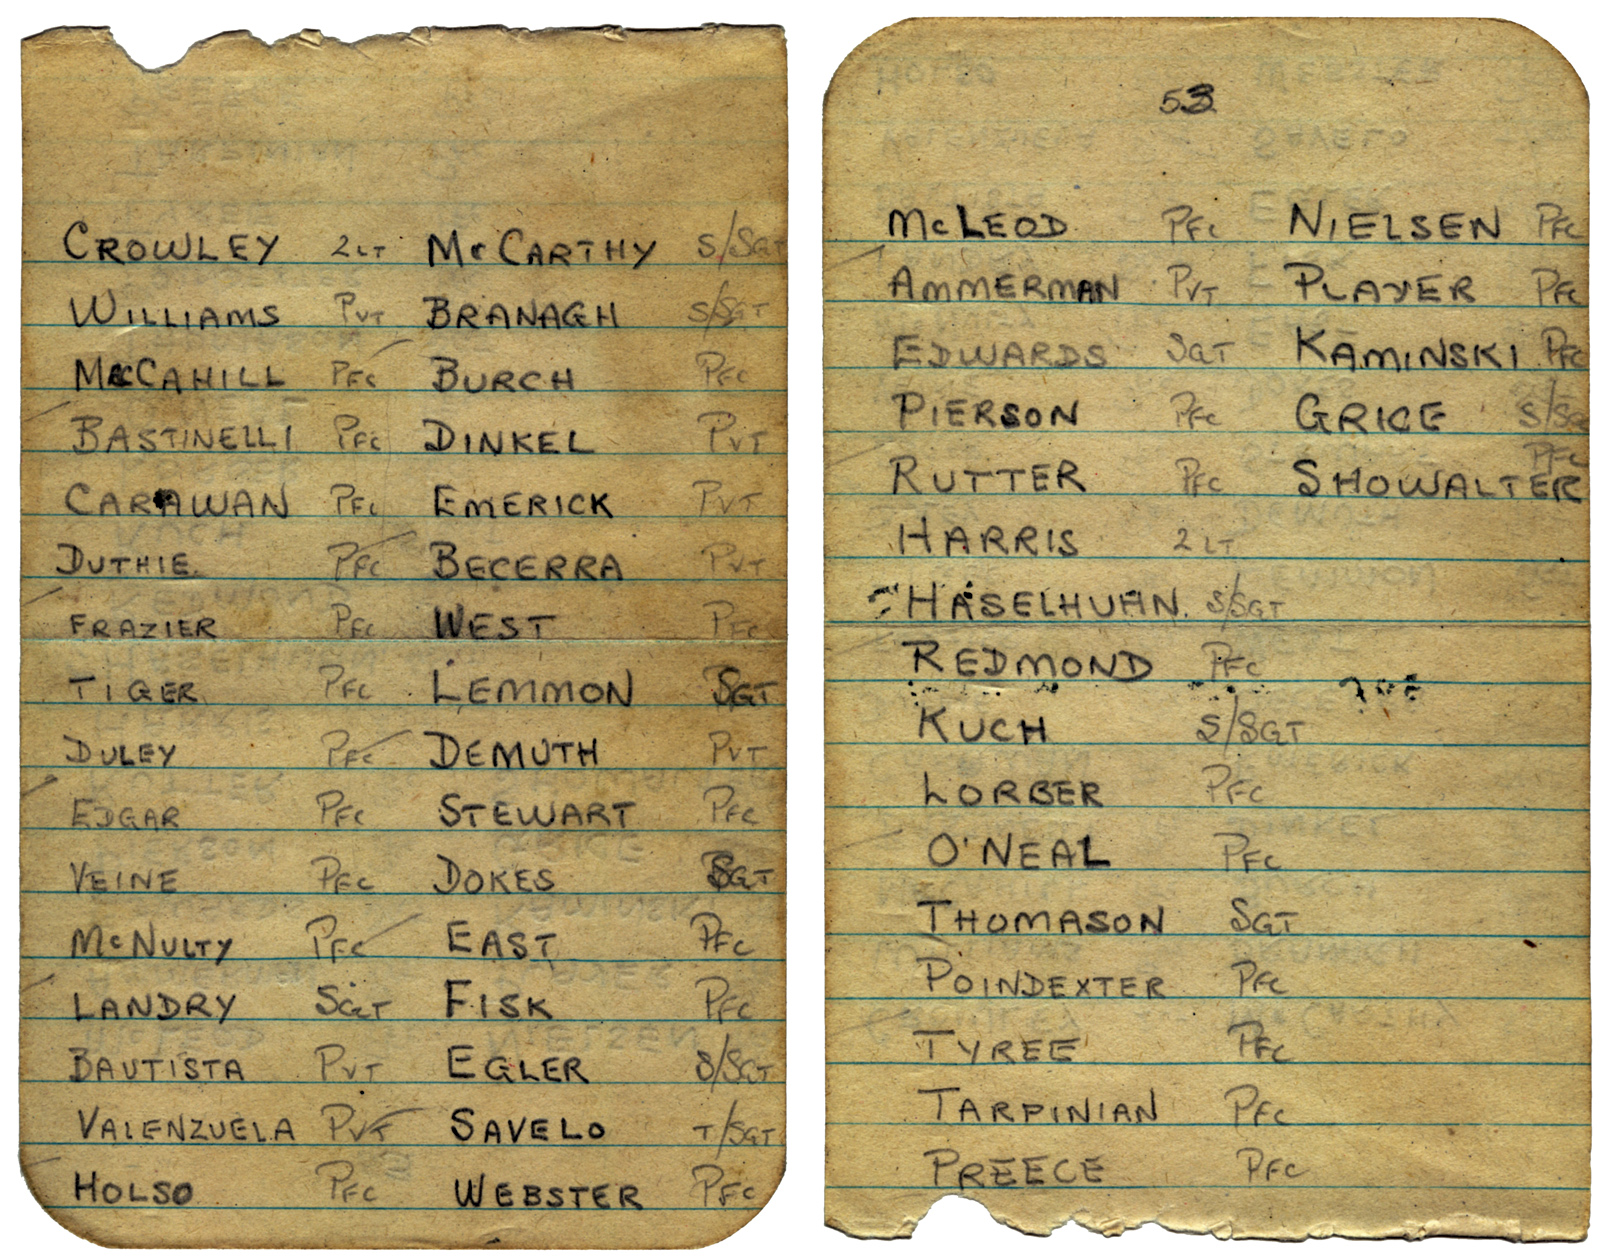 The List Contains Only Last Name And Rank Of Soldiers With No Other Indicator As To Its Meaning Research Into History Unit Revealed